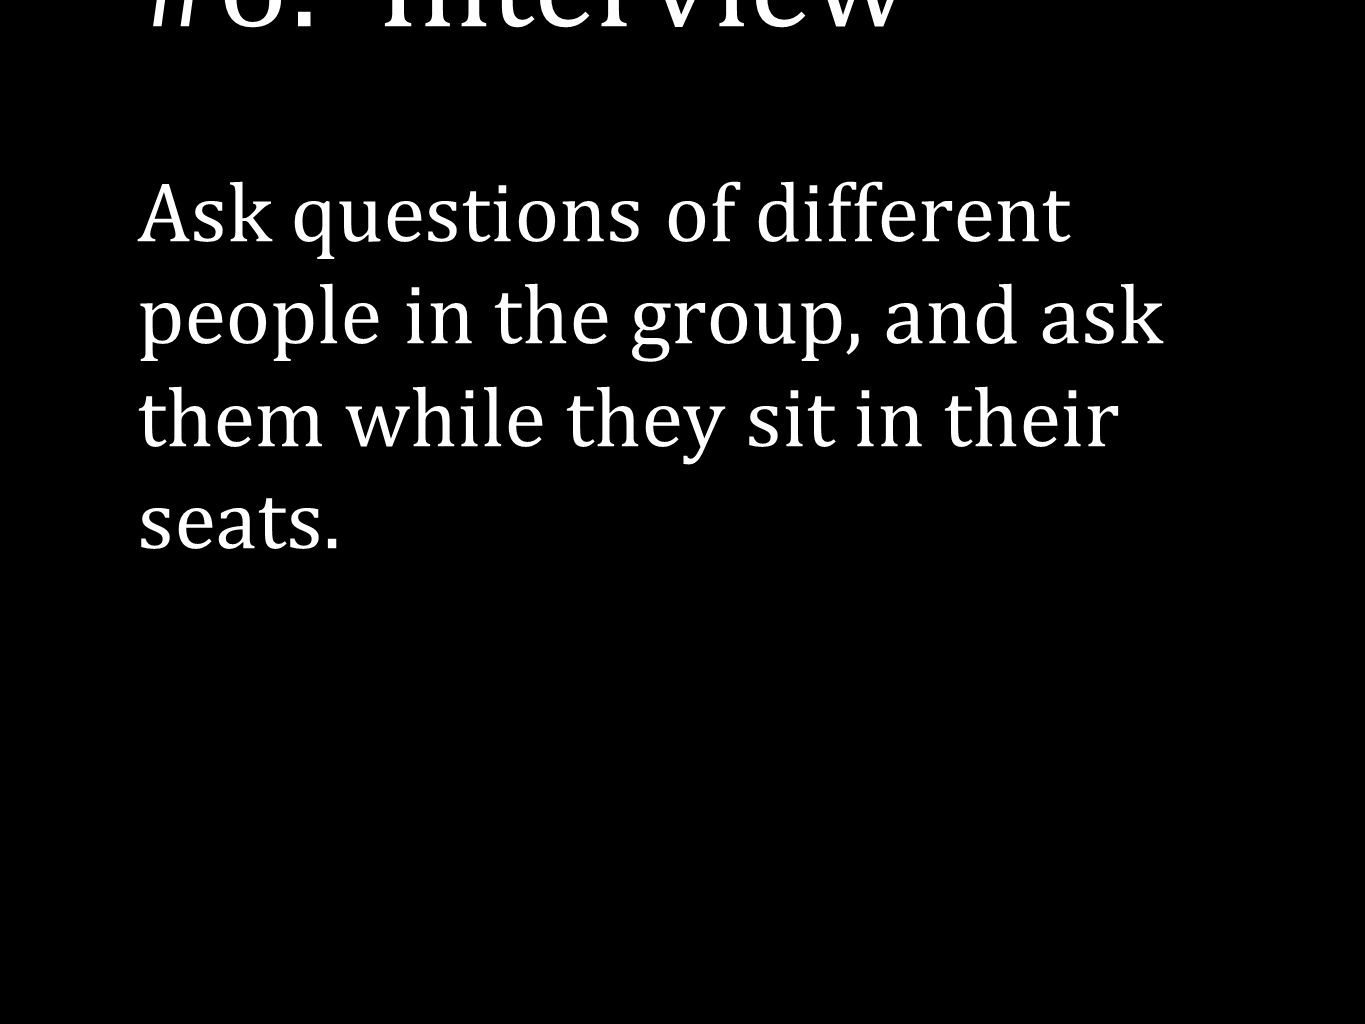 #6: Interview Ask questions of different people in the group, and ask them while they sit in their seats.